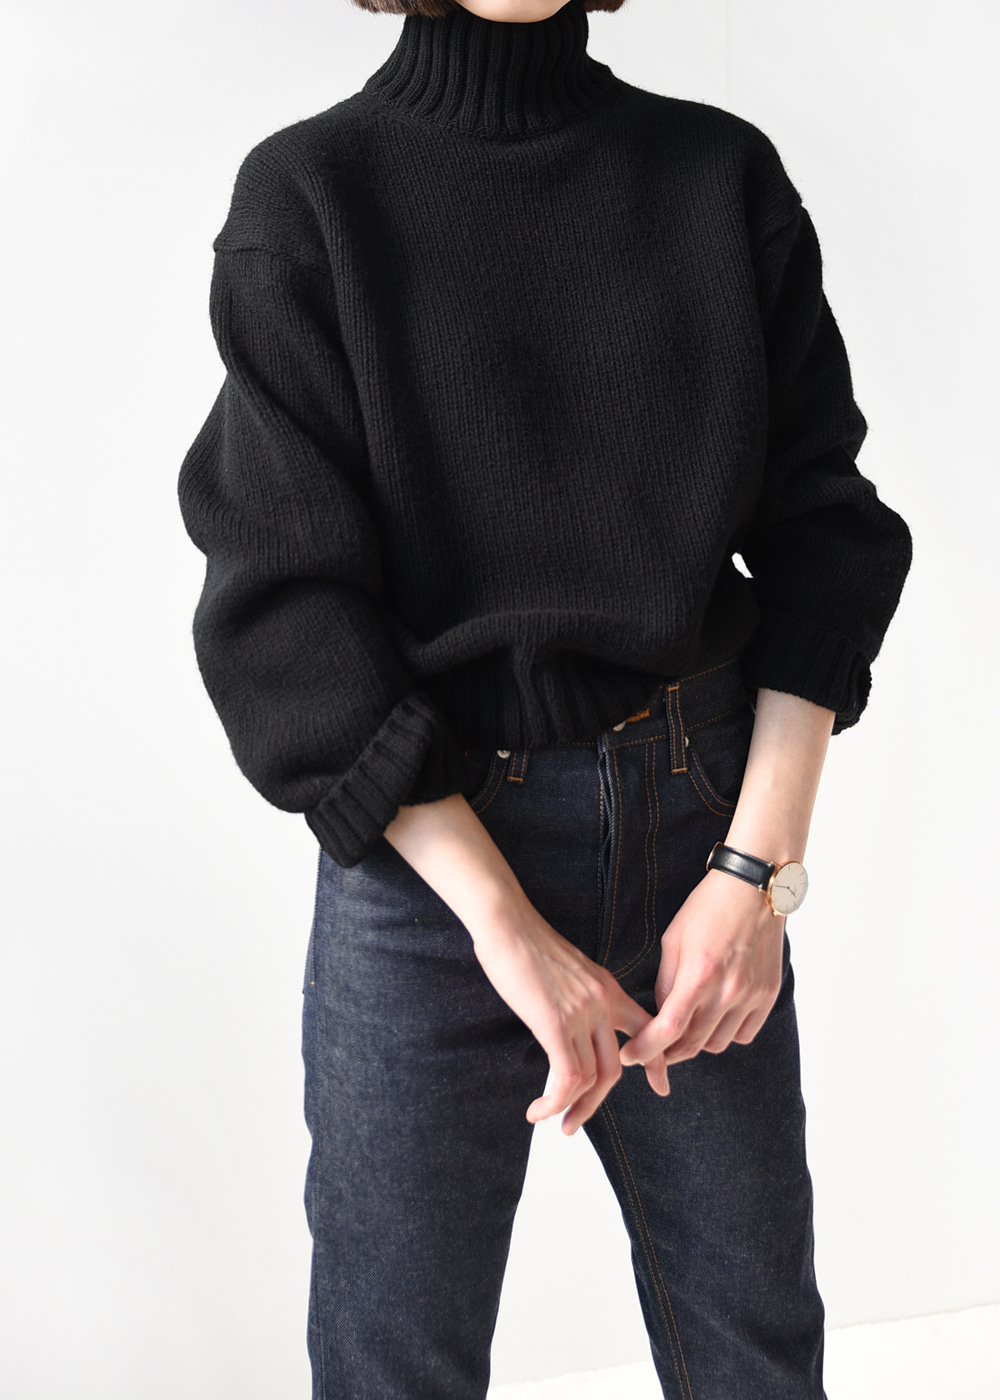 [Romanticize] Shetland Wool Turtleneck Knit (Black)